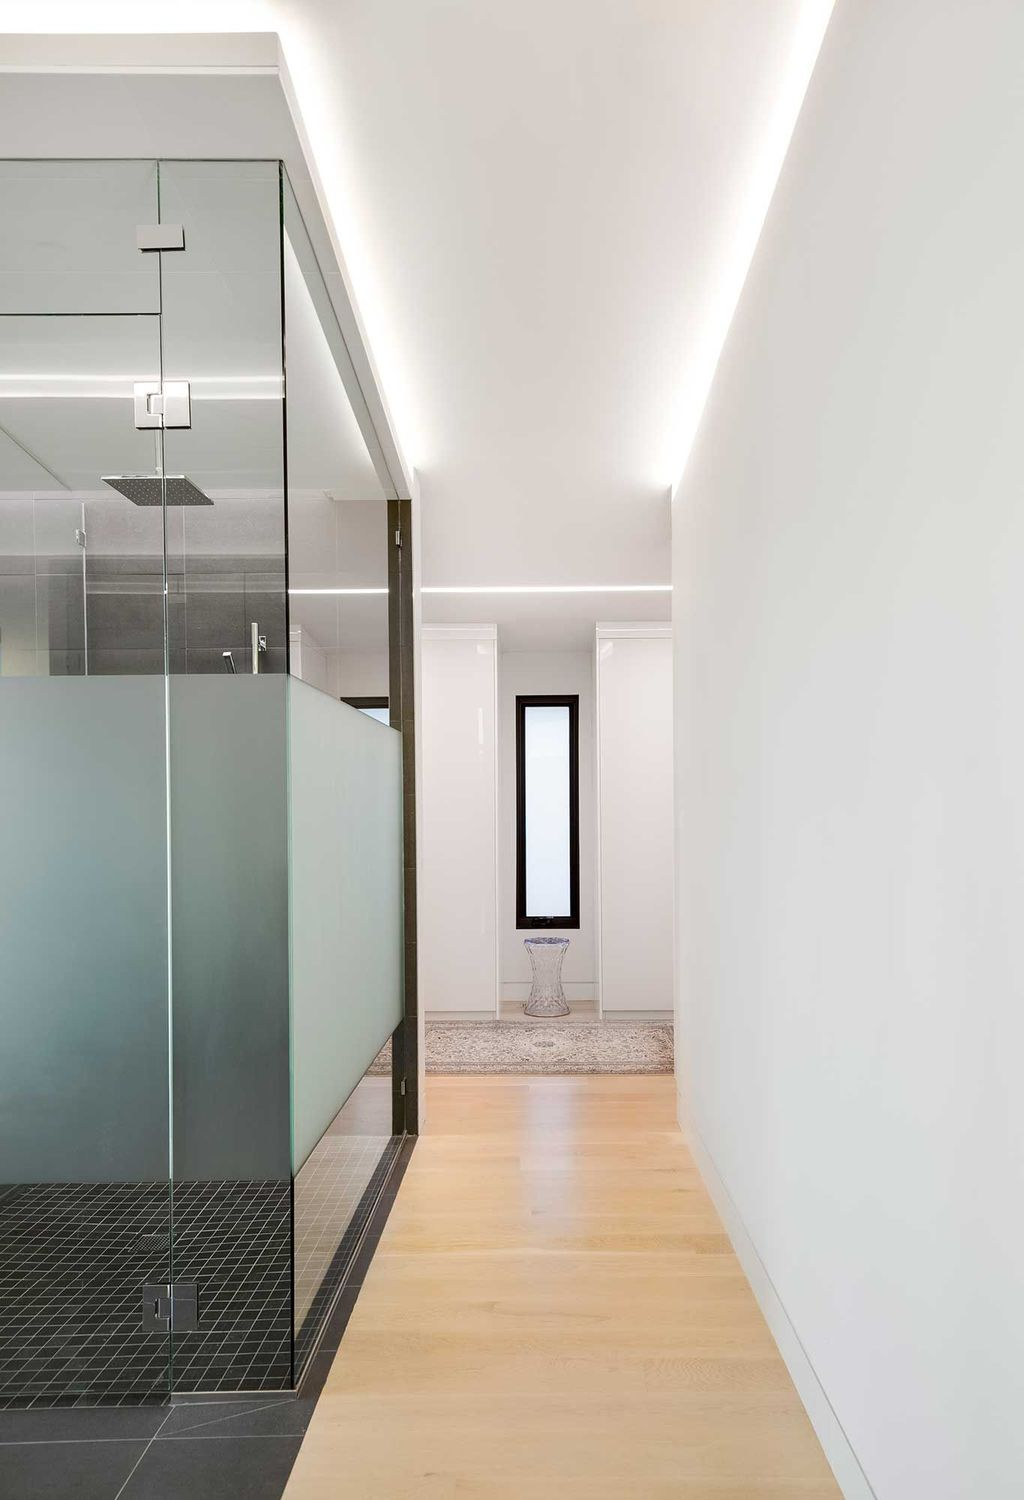 Inspiring Drywall Design Ideas To Beautify Your Interior 22